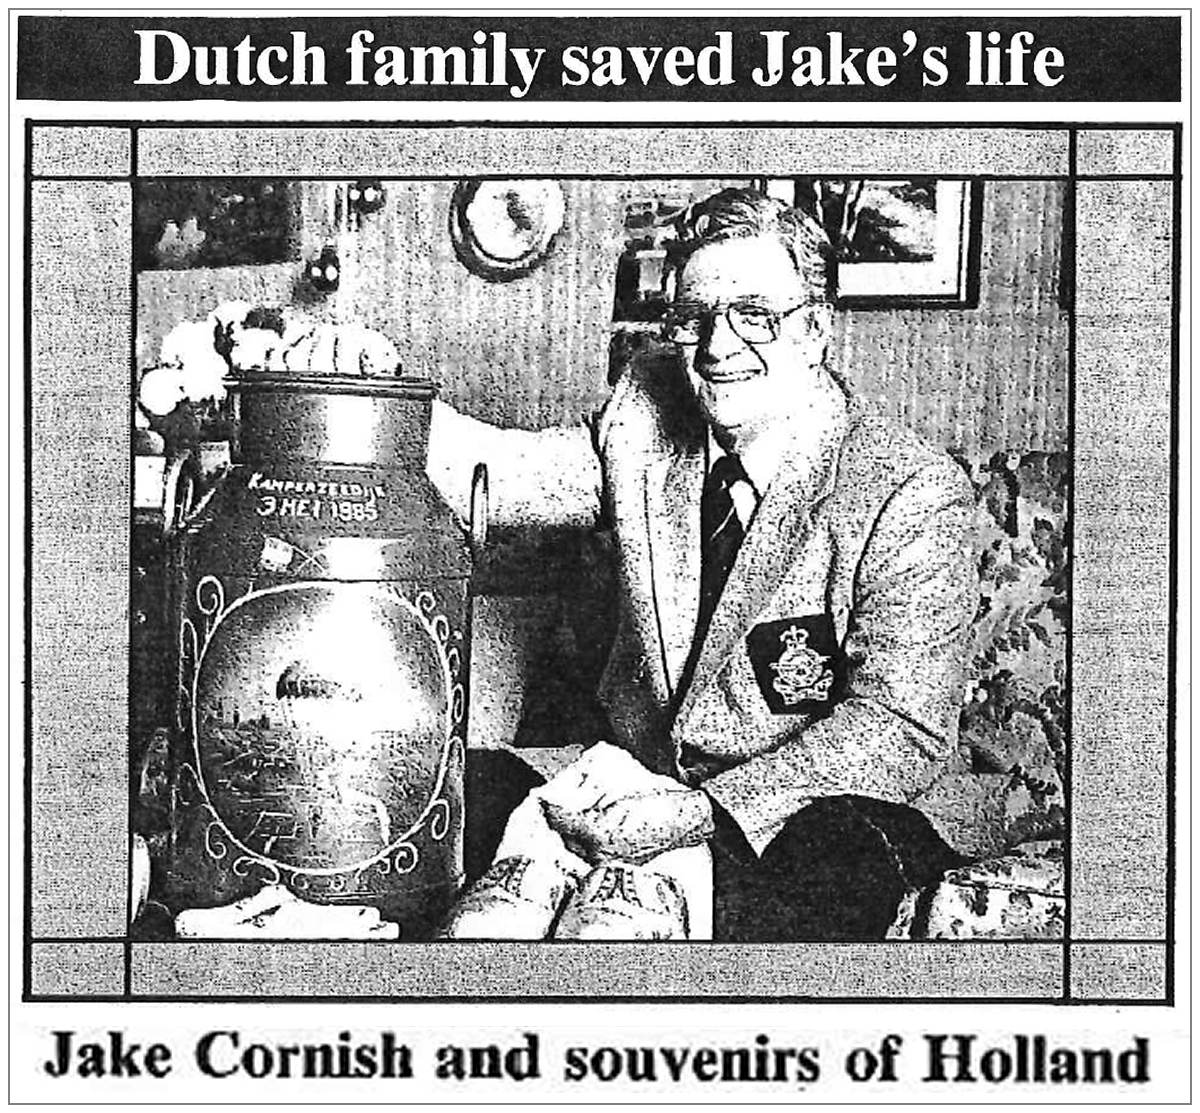 Jake Cornish and souvenirs of Holland